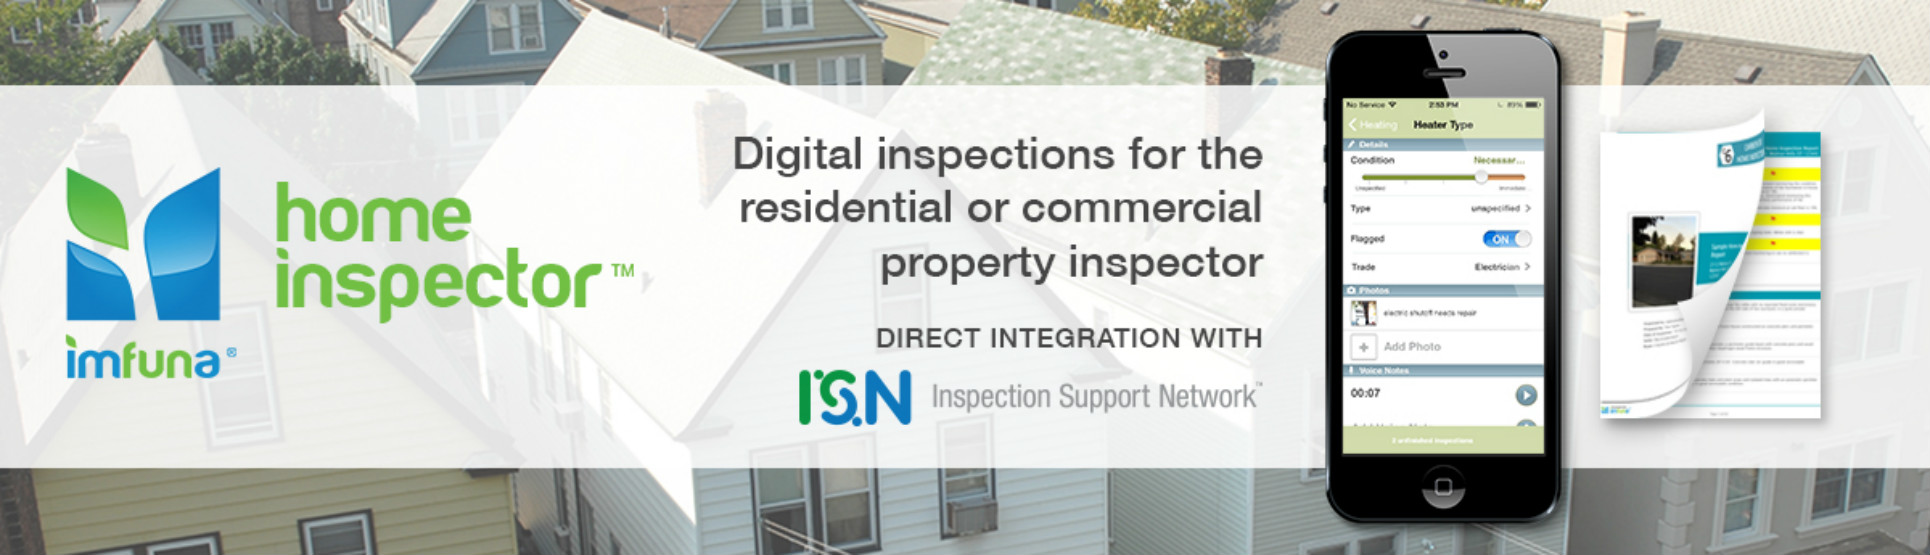 Imfuna Hone Inspector software for mobile property reports